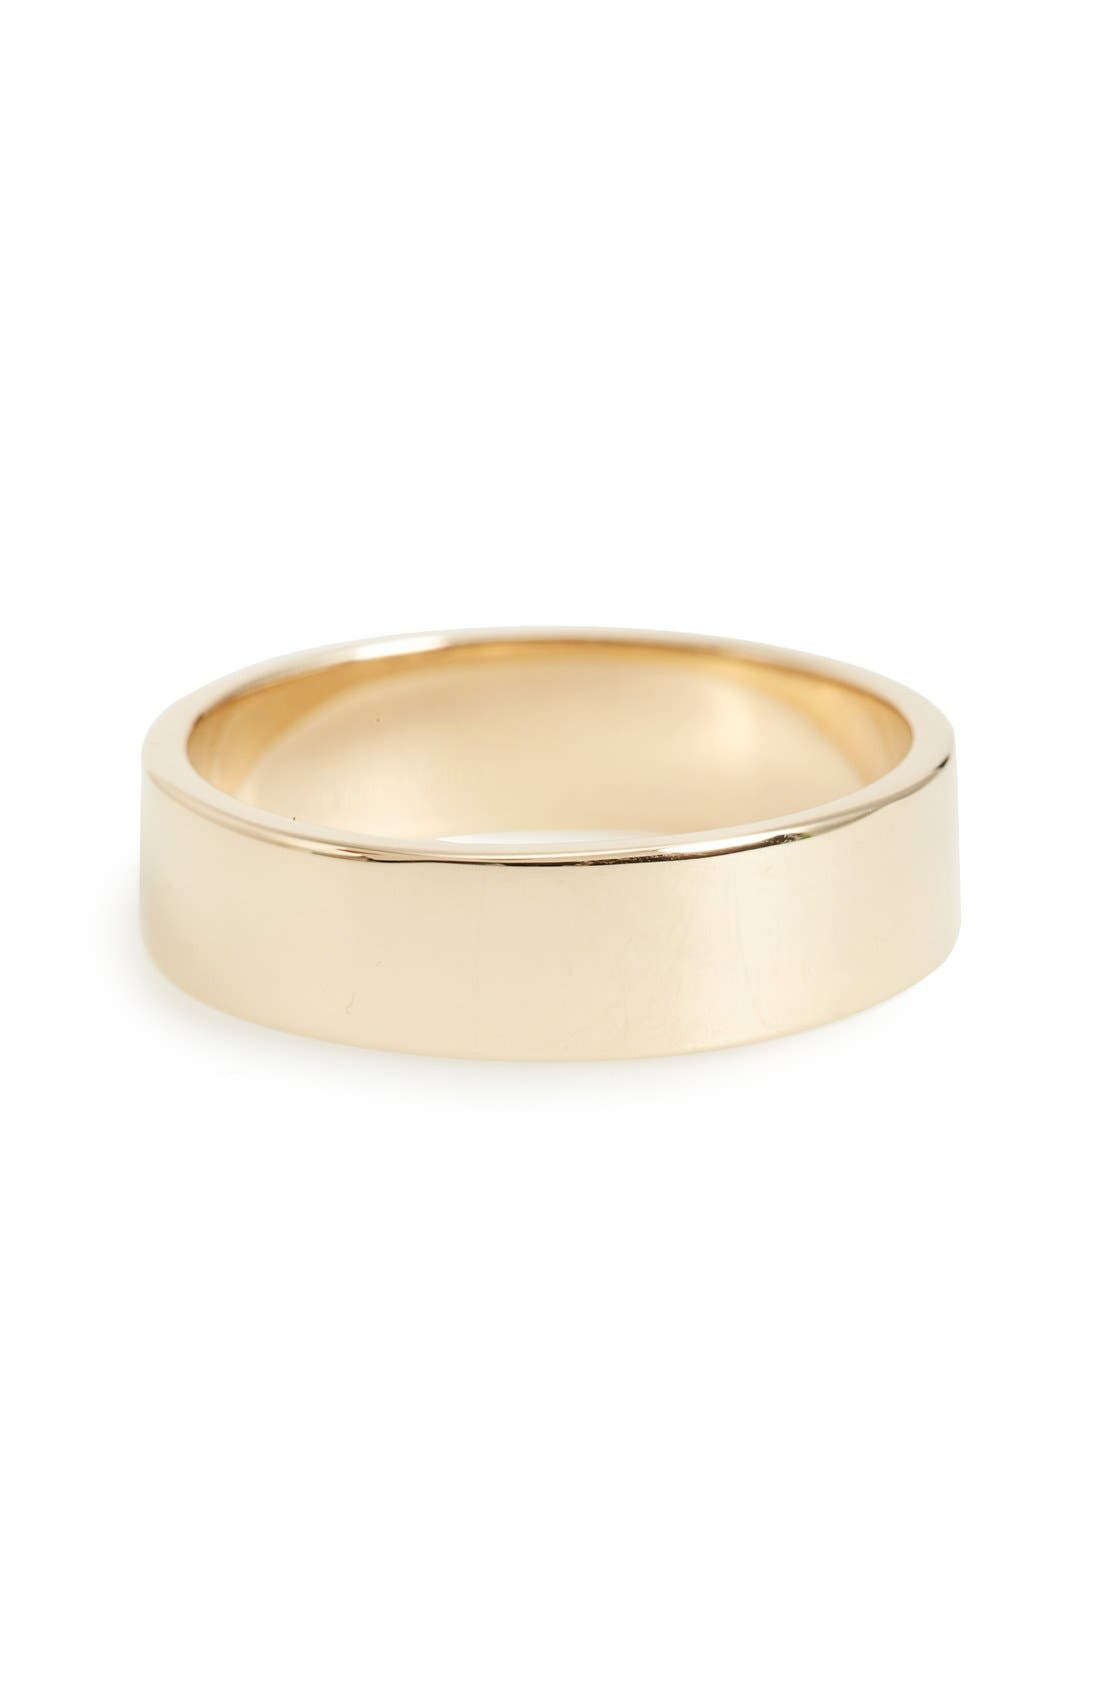 Main Image - WWAKE Harmony® Flat Classic 5mm Shiny Band Ring (Nordstrom Exclusive)